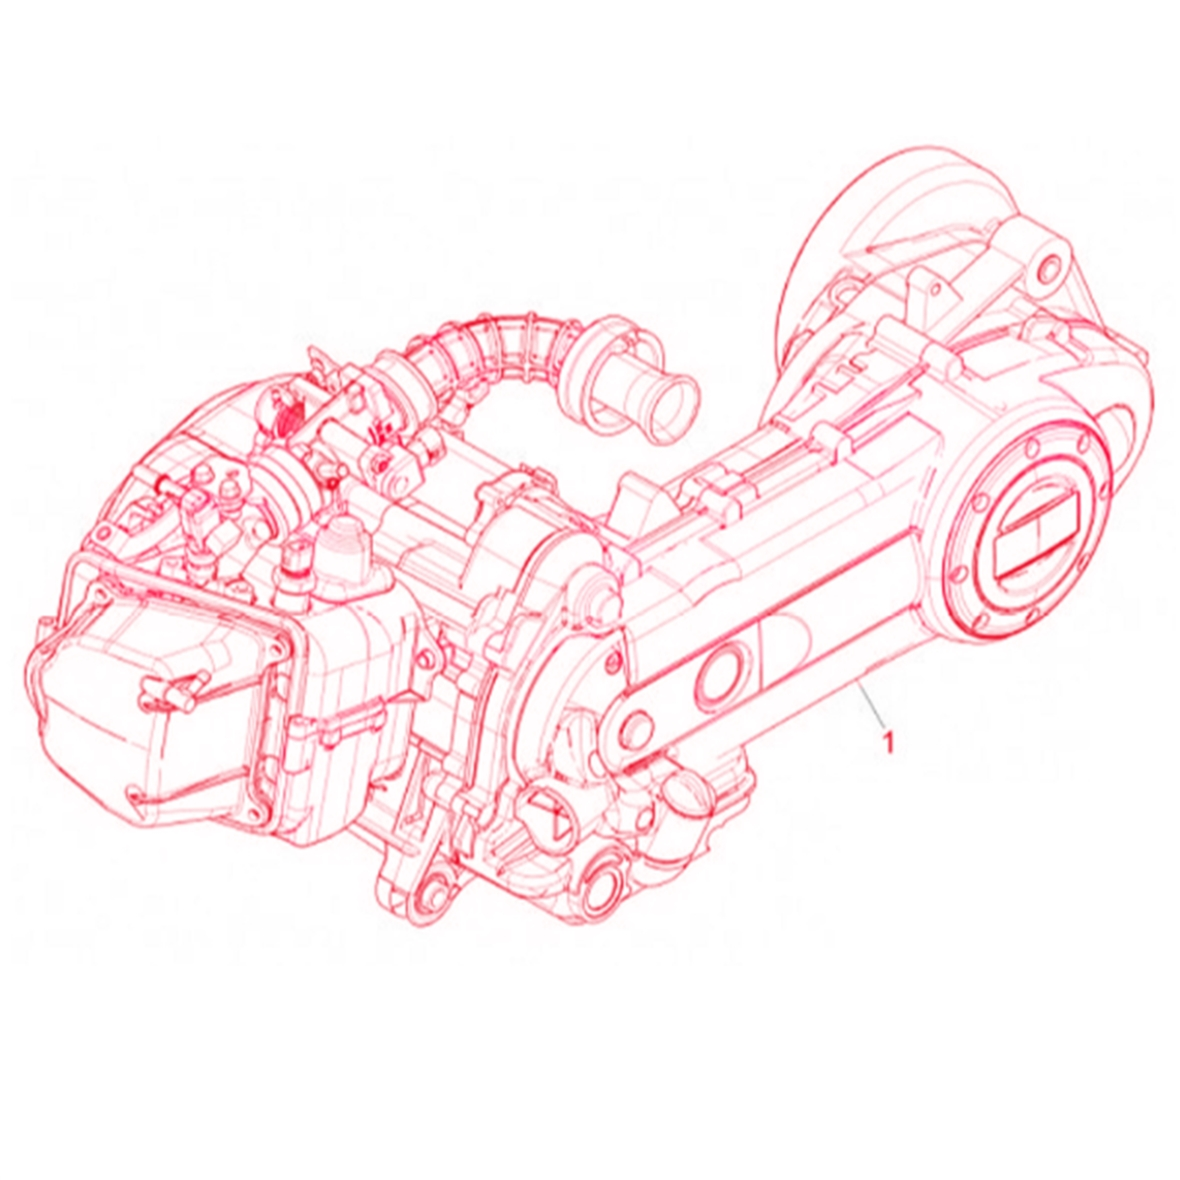 Product Image for 'Engine PIAGGIO Euro 4Title'